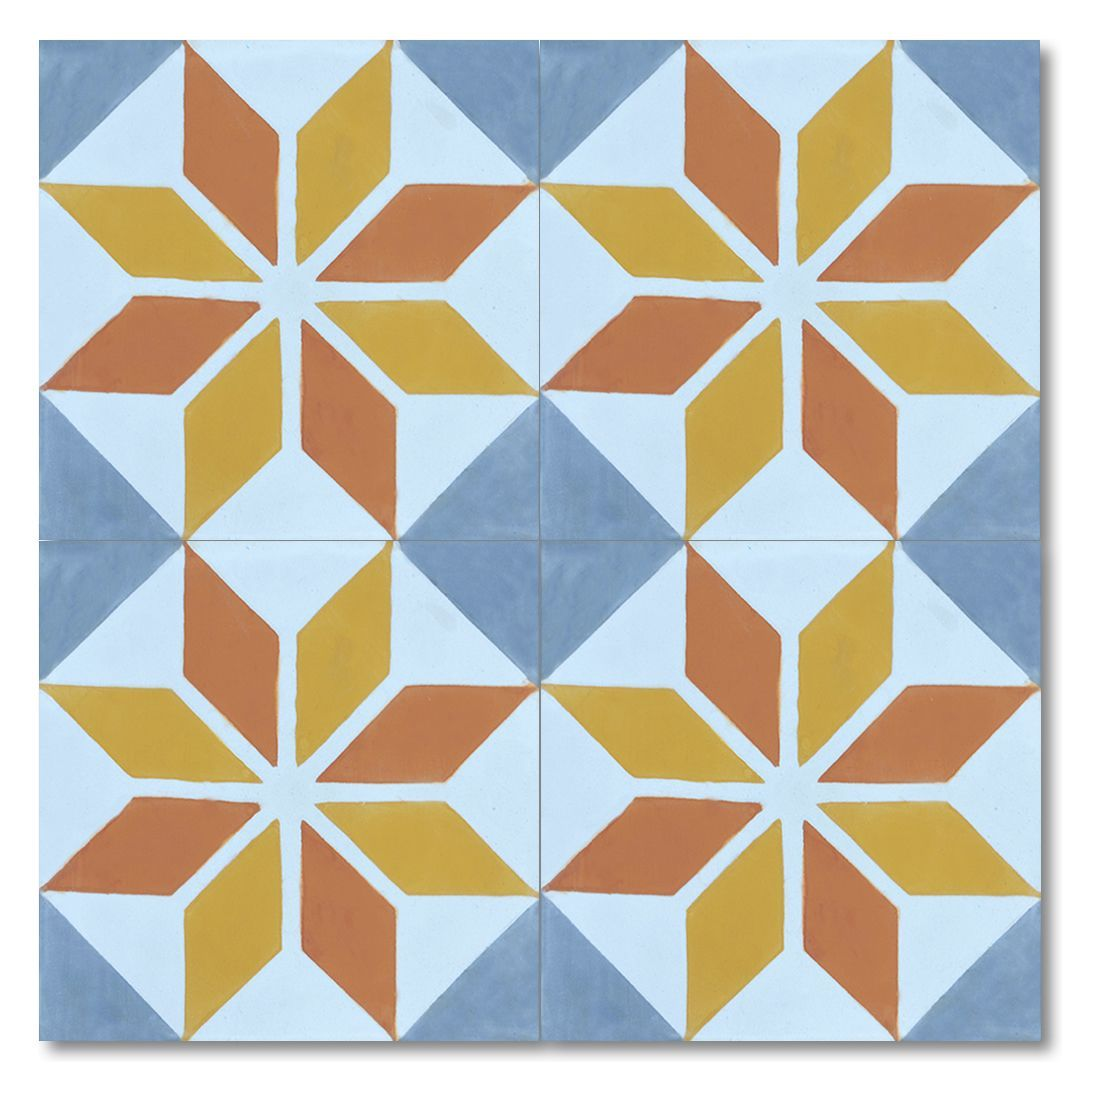 Assila Gold Handmade Moroccan X Inch Cement And Granite Floor Or - 8 inch square ceramic tiles